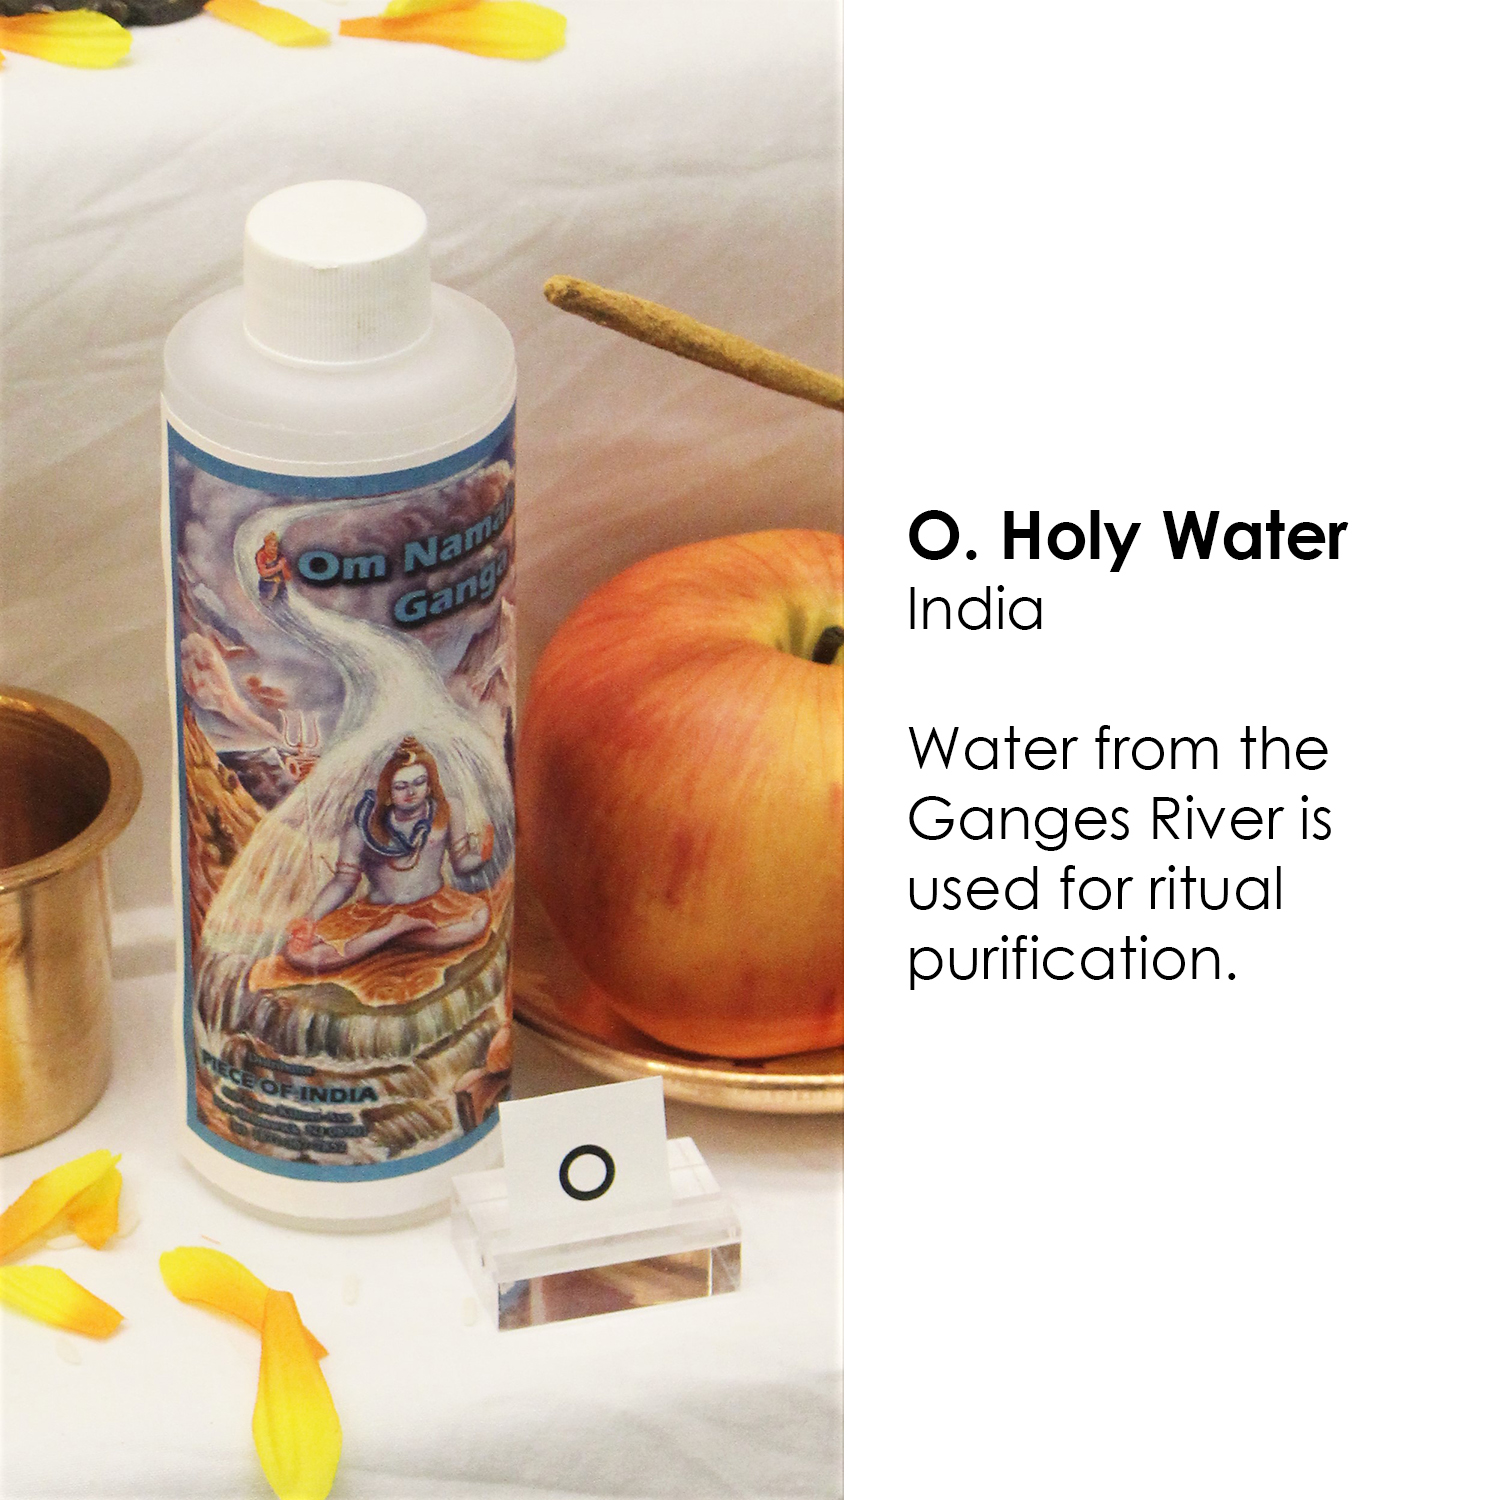 Hindu holy water from the Ganges River